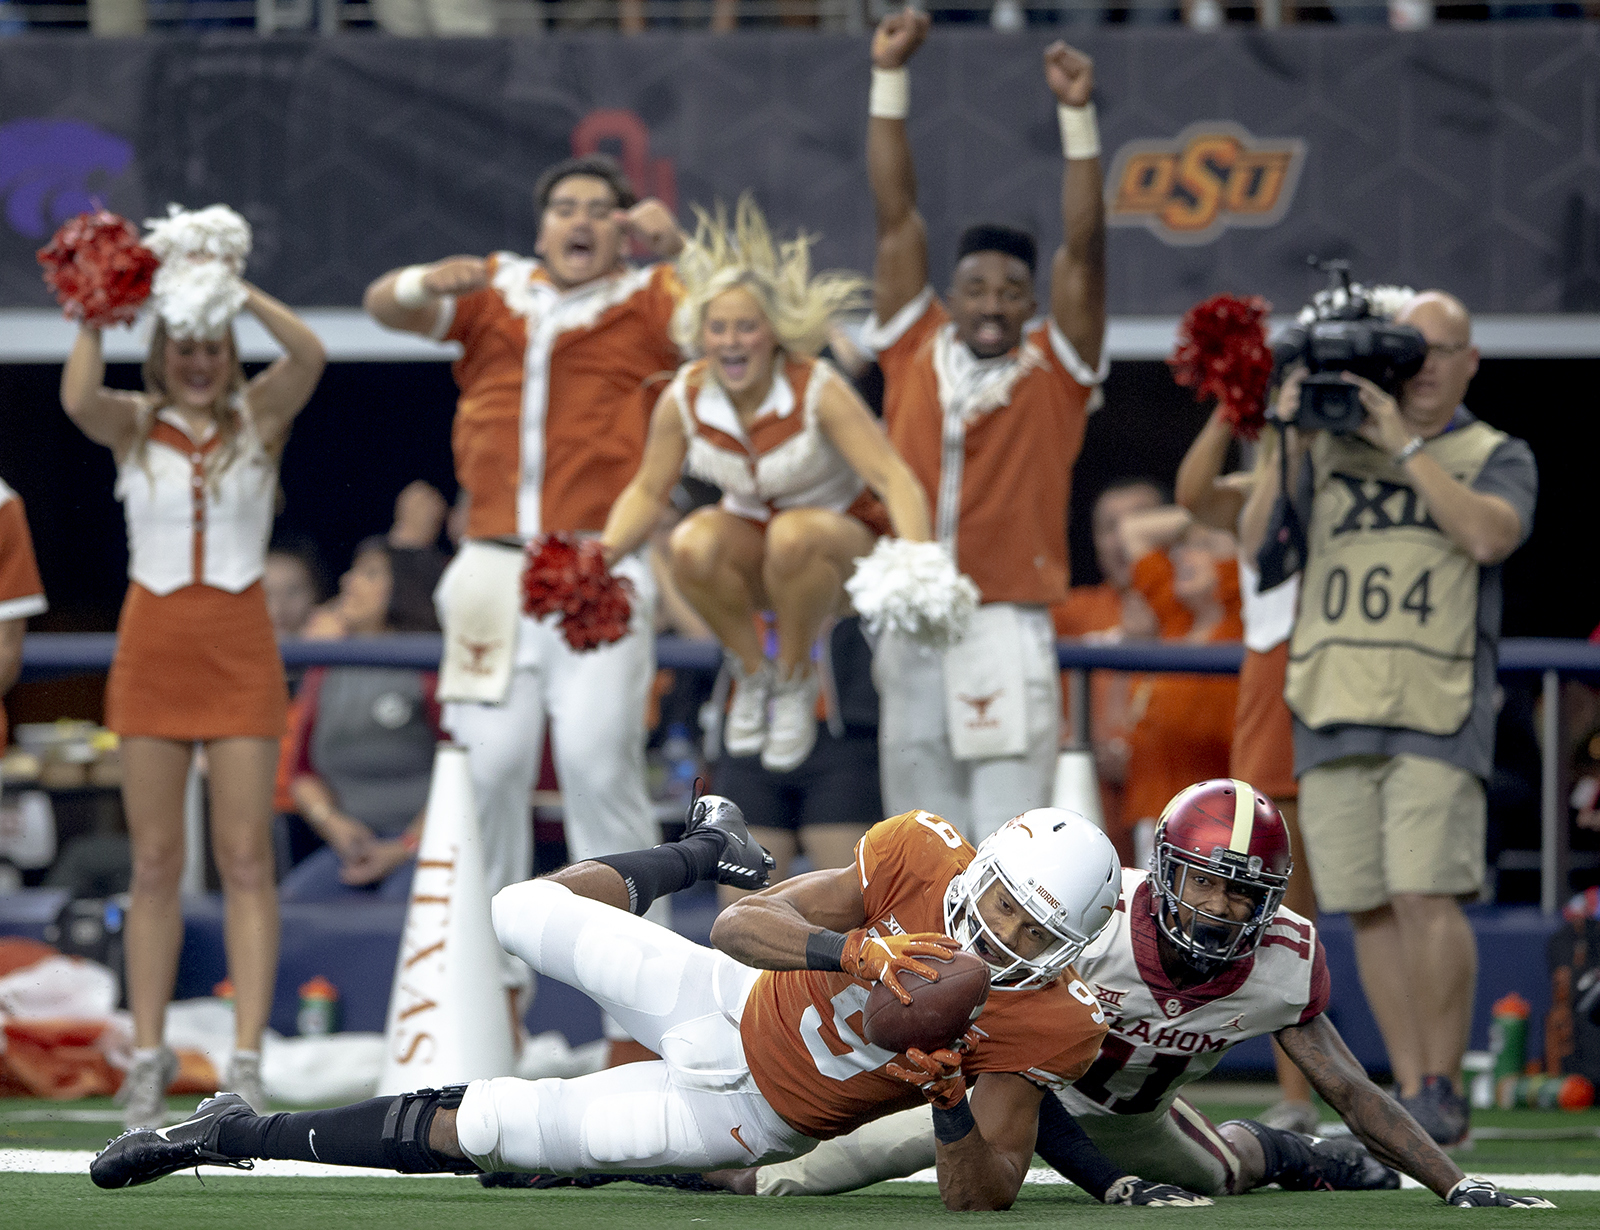 Texas wide receiver Collin Johnson (9) gets his hands on a pass but can't secure the ball for a touchdown during the Big 12 Conference championship NCAA college football game against Oklahoma in Arlington, Texas, on Saturday, Dec. 1, 2018. (Nick Wagner/Austin American-Statesman via AP)